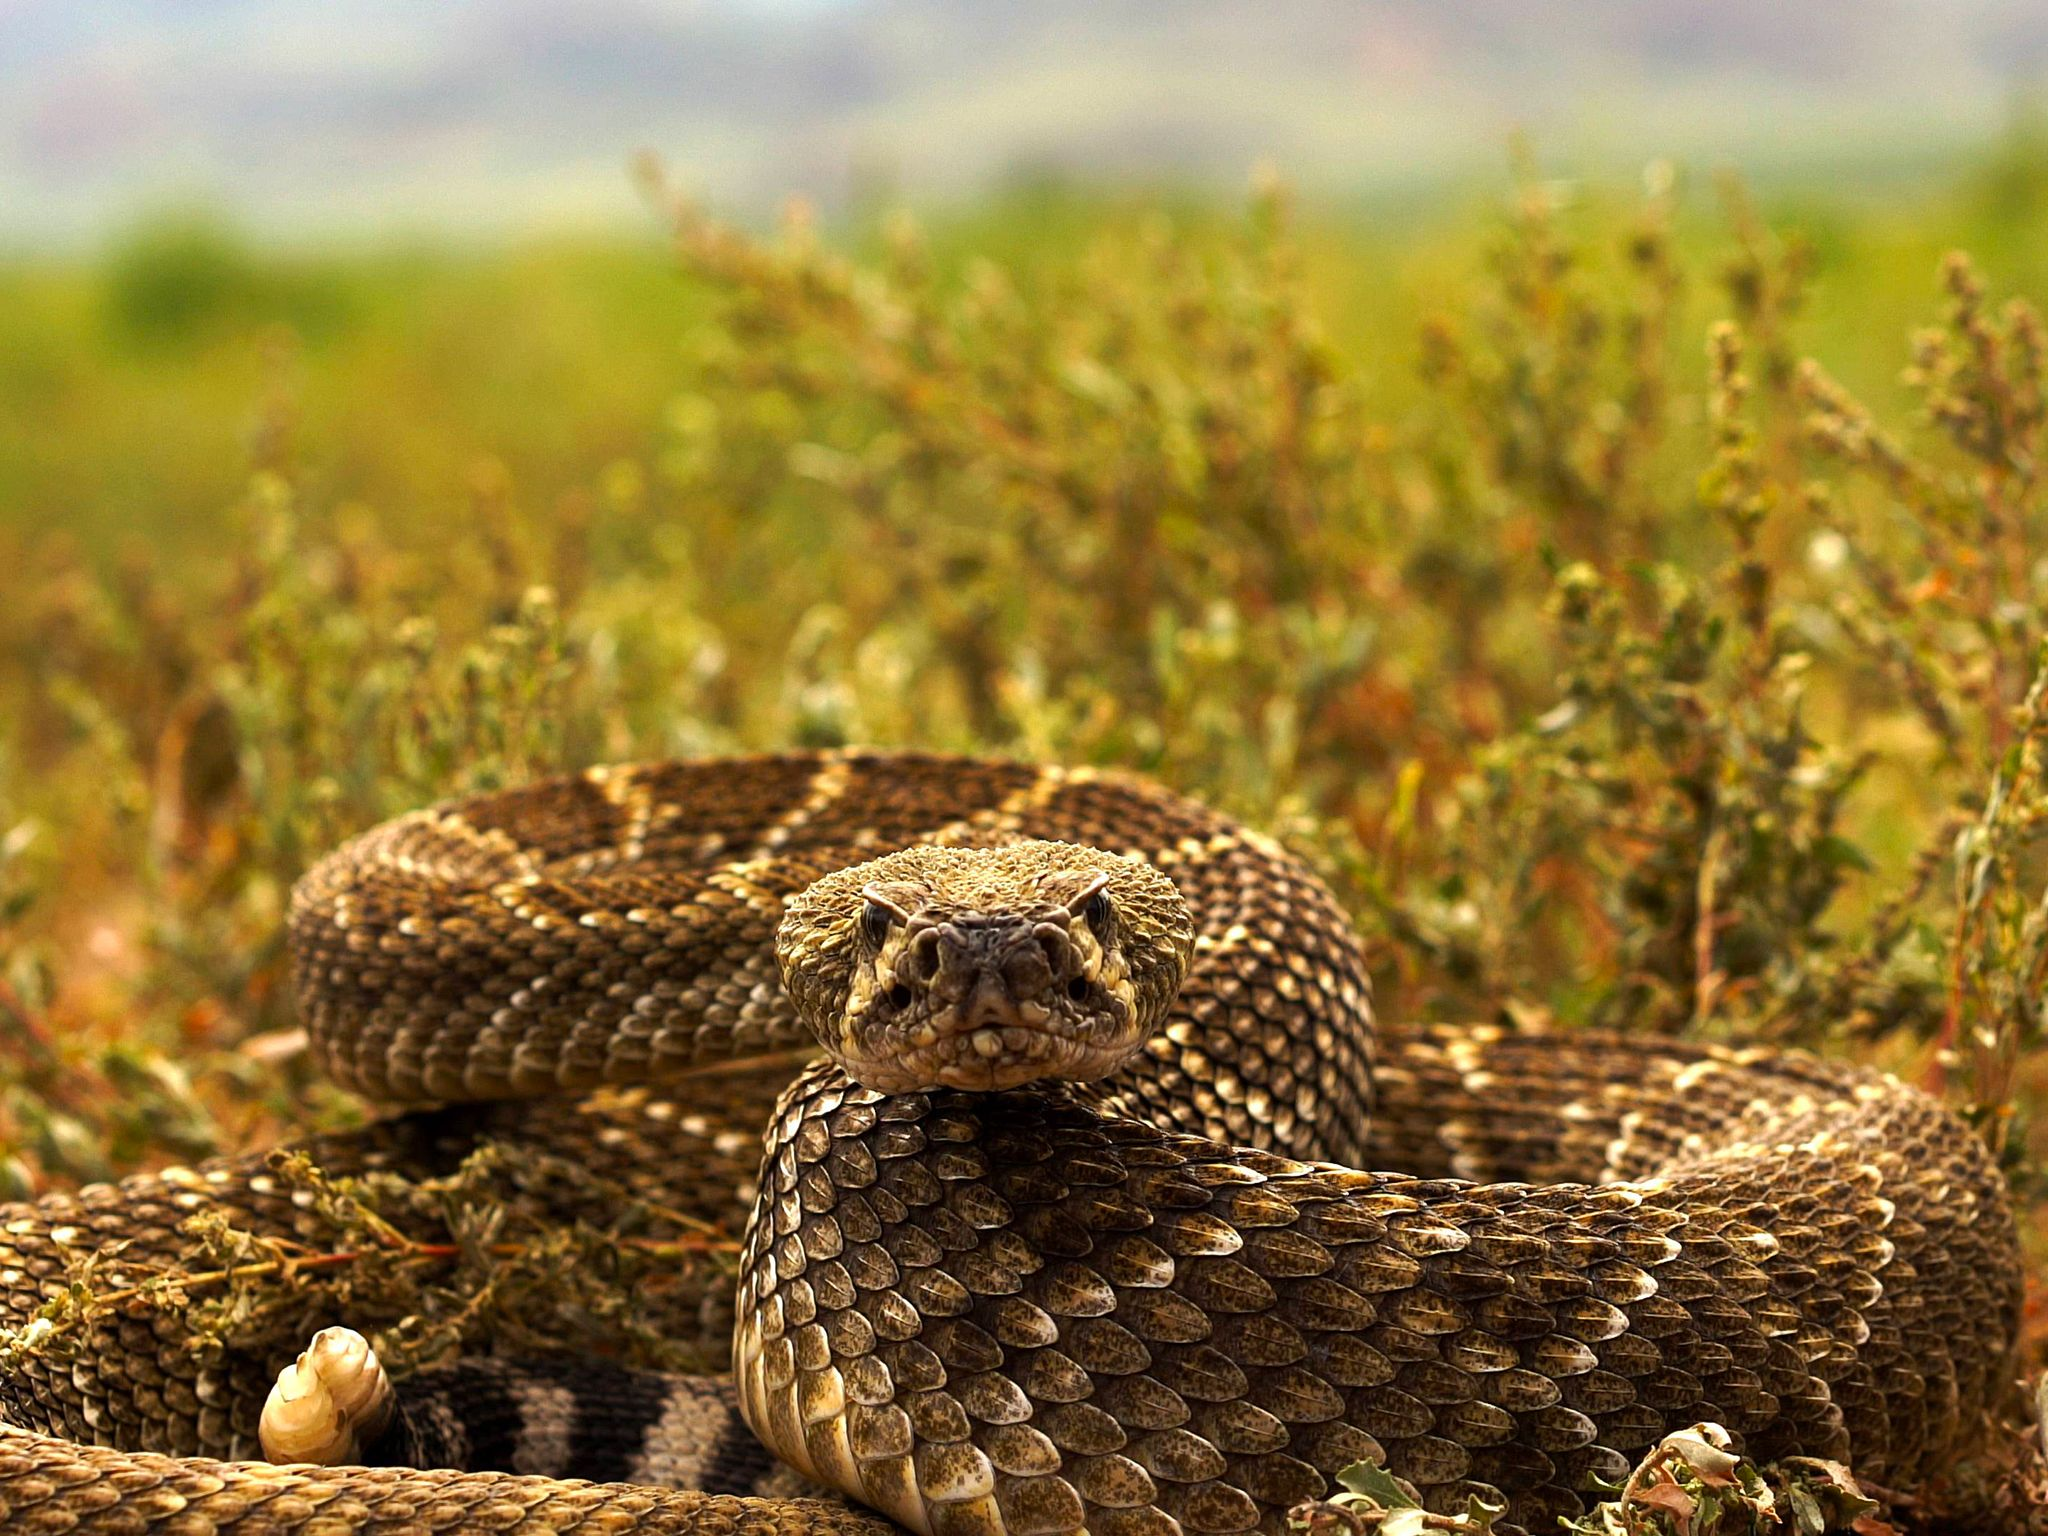 Arizona: Western diamondback rattlesnake in strike pose. This image is from Viper Queens. [Photo of the day - September 2016]